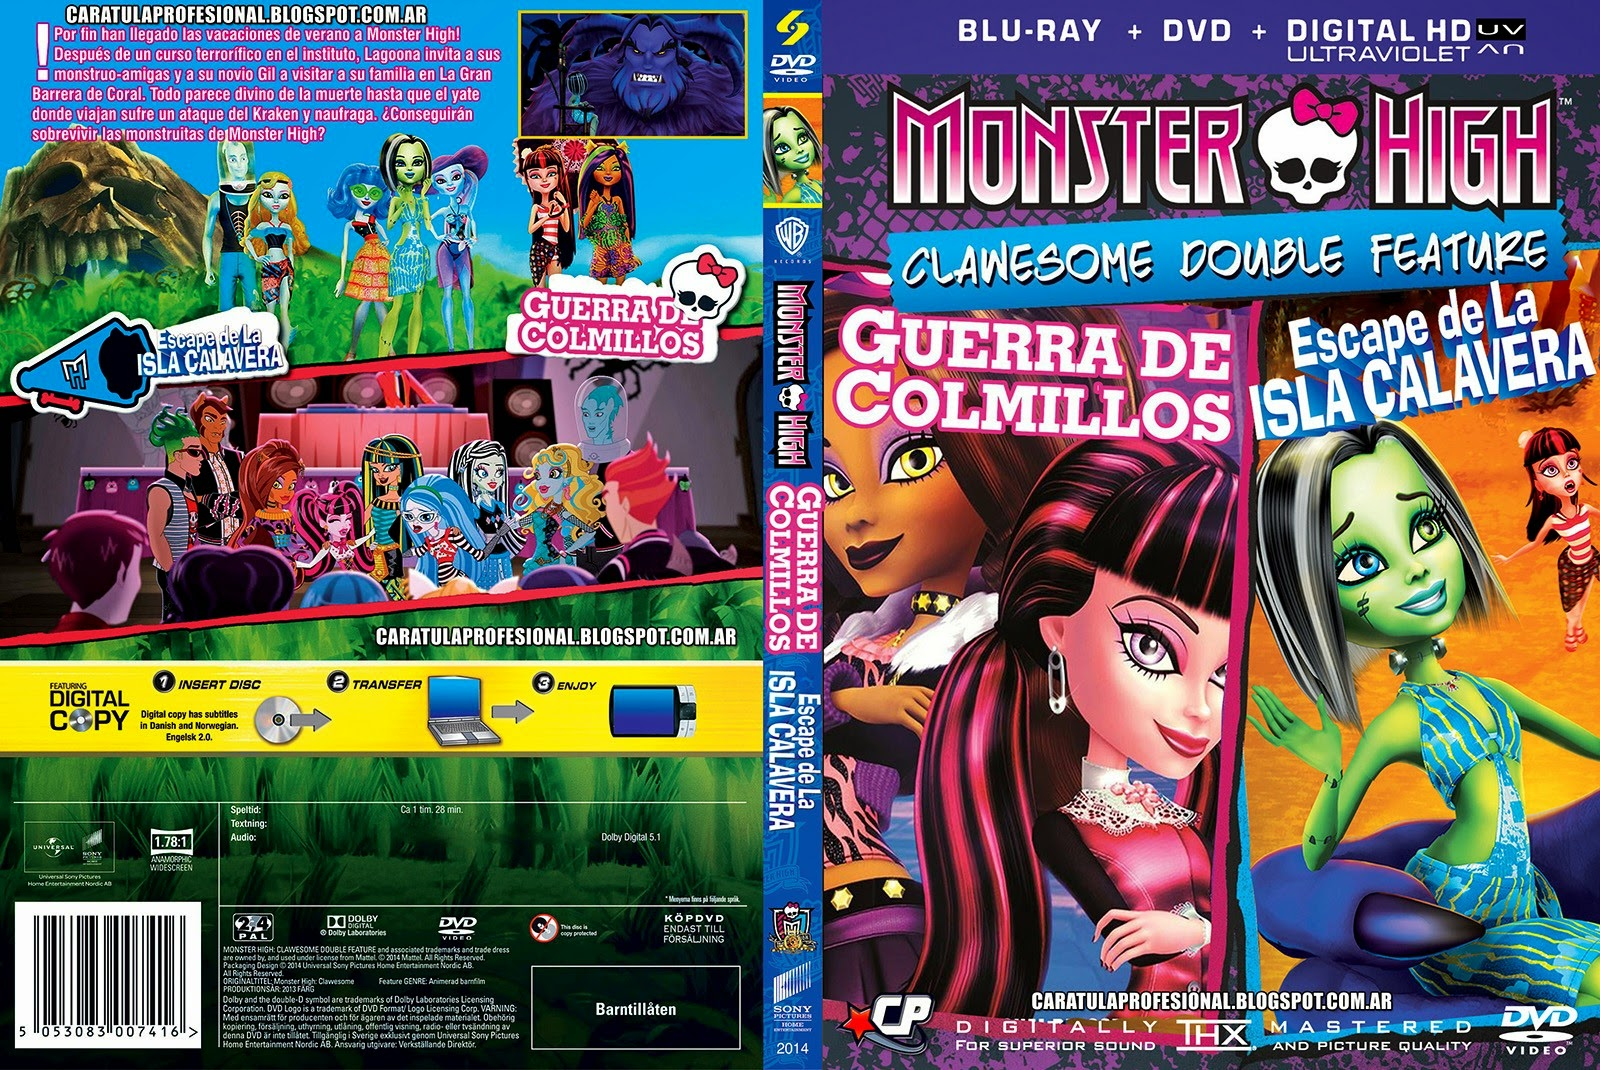 Monster High Clawesome Double Feature DVDRip XviD Dublado iqG1VtUkLW4qg